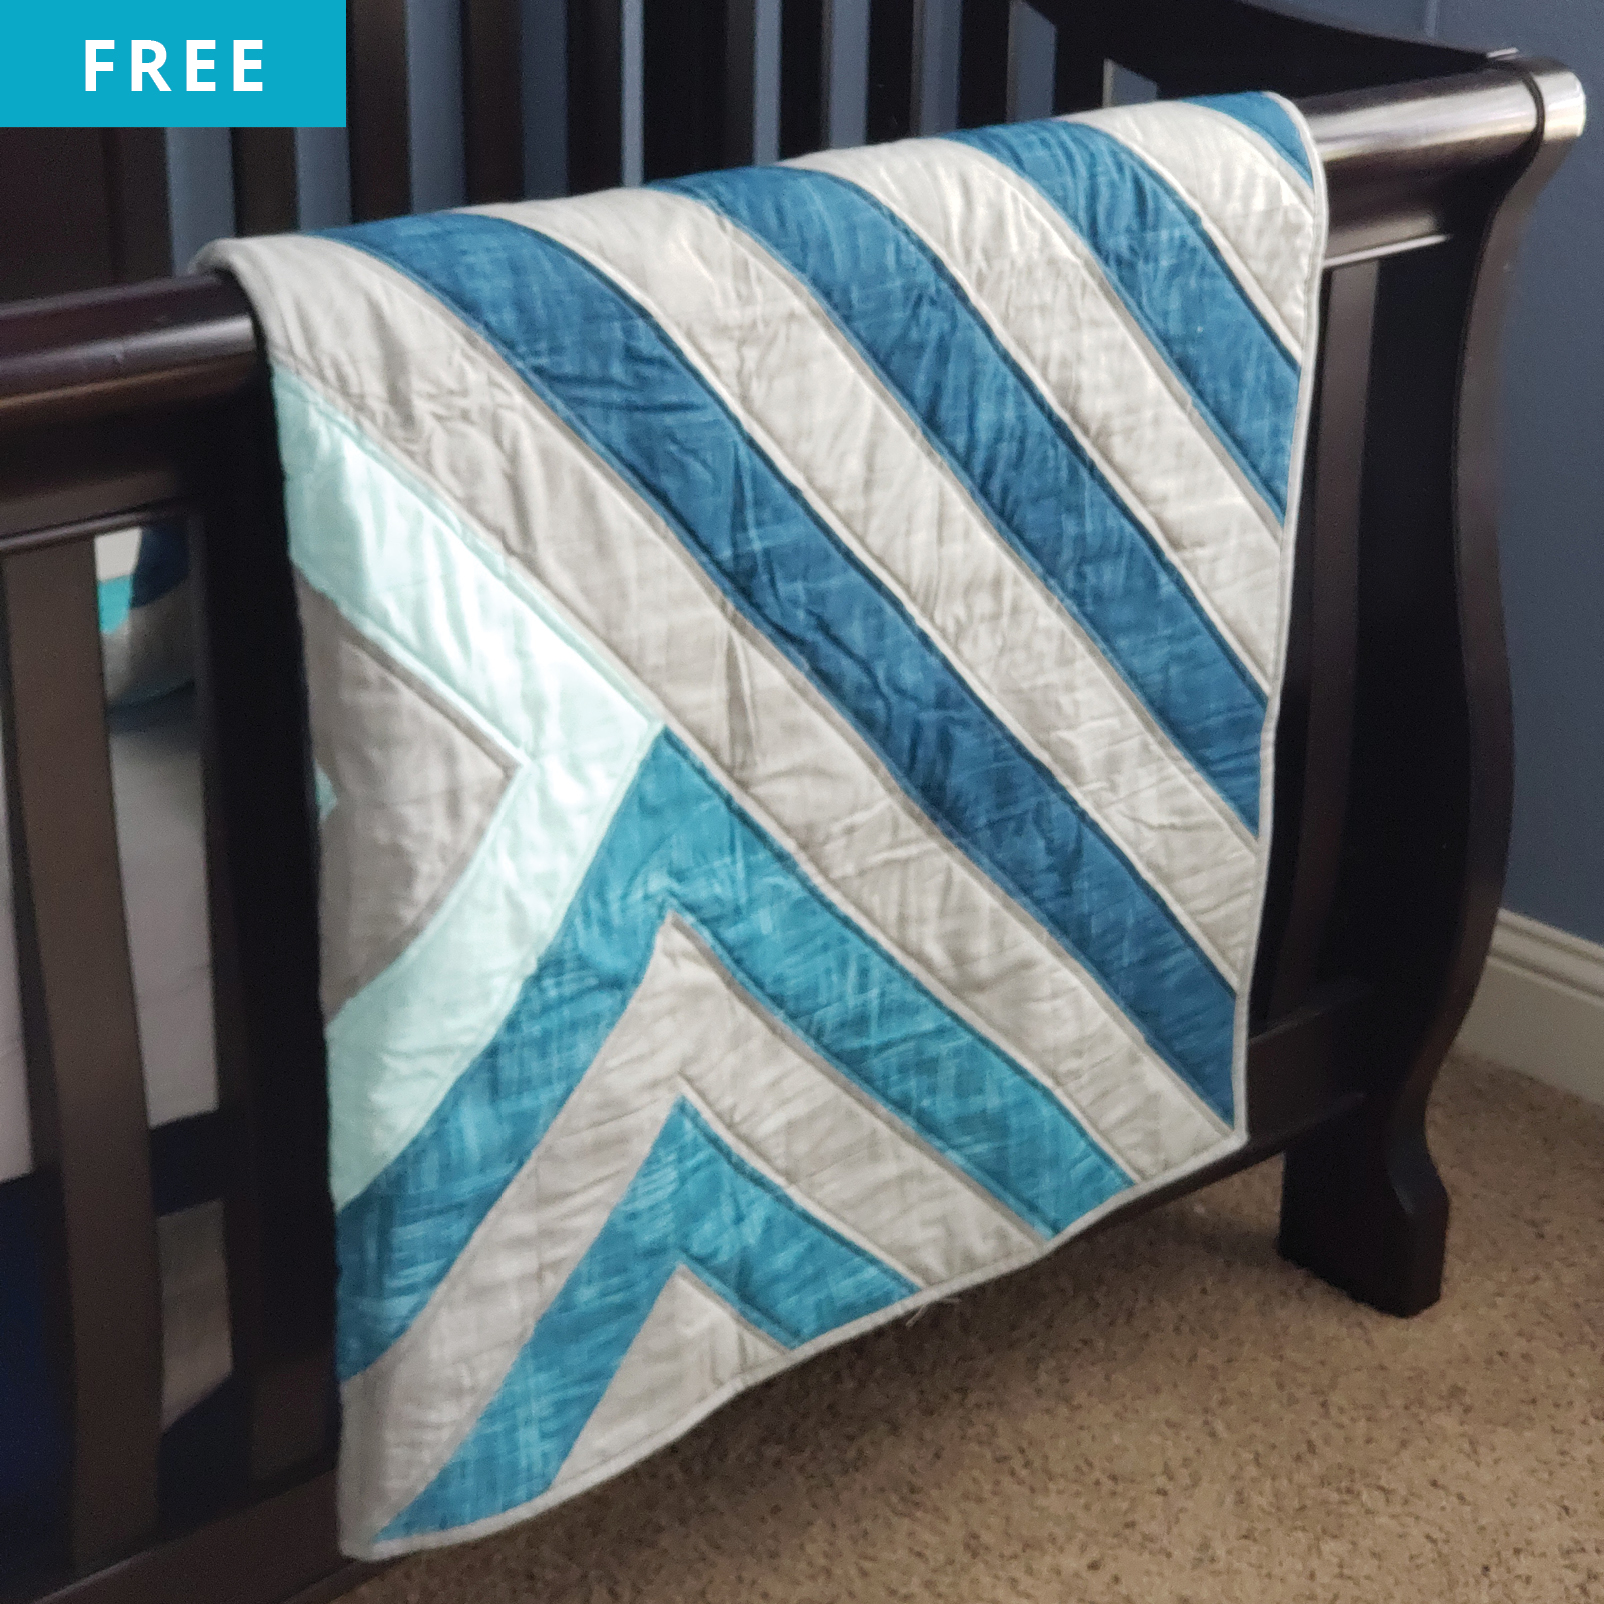 Free Quilt Pattern - Modern Angle Quilt